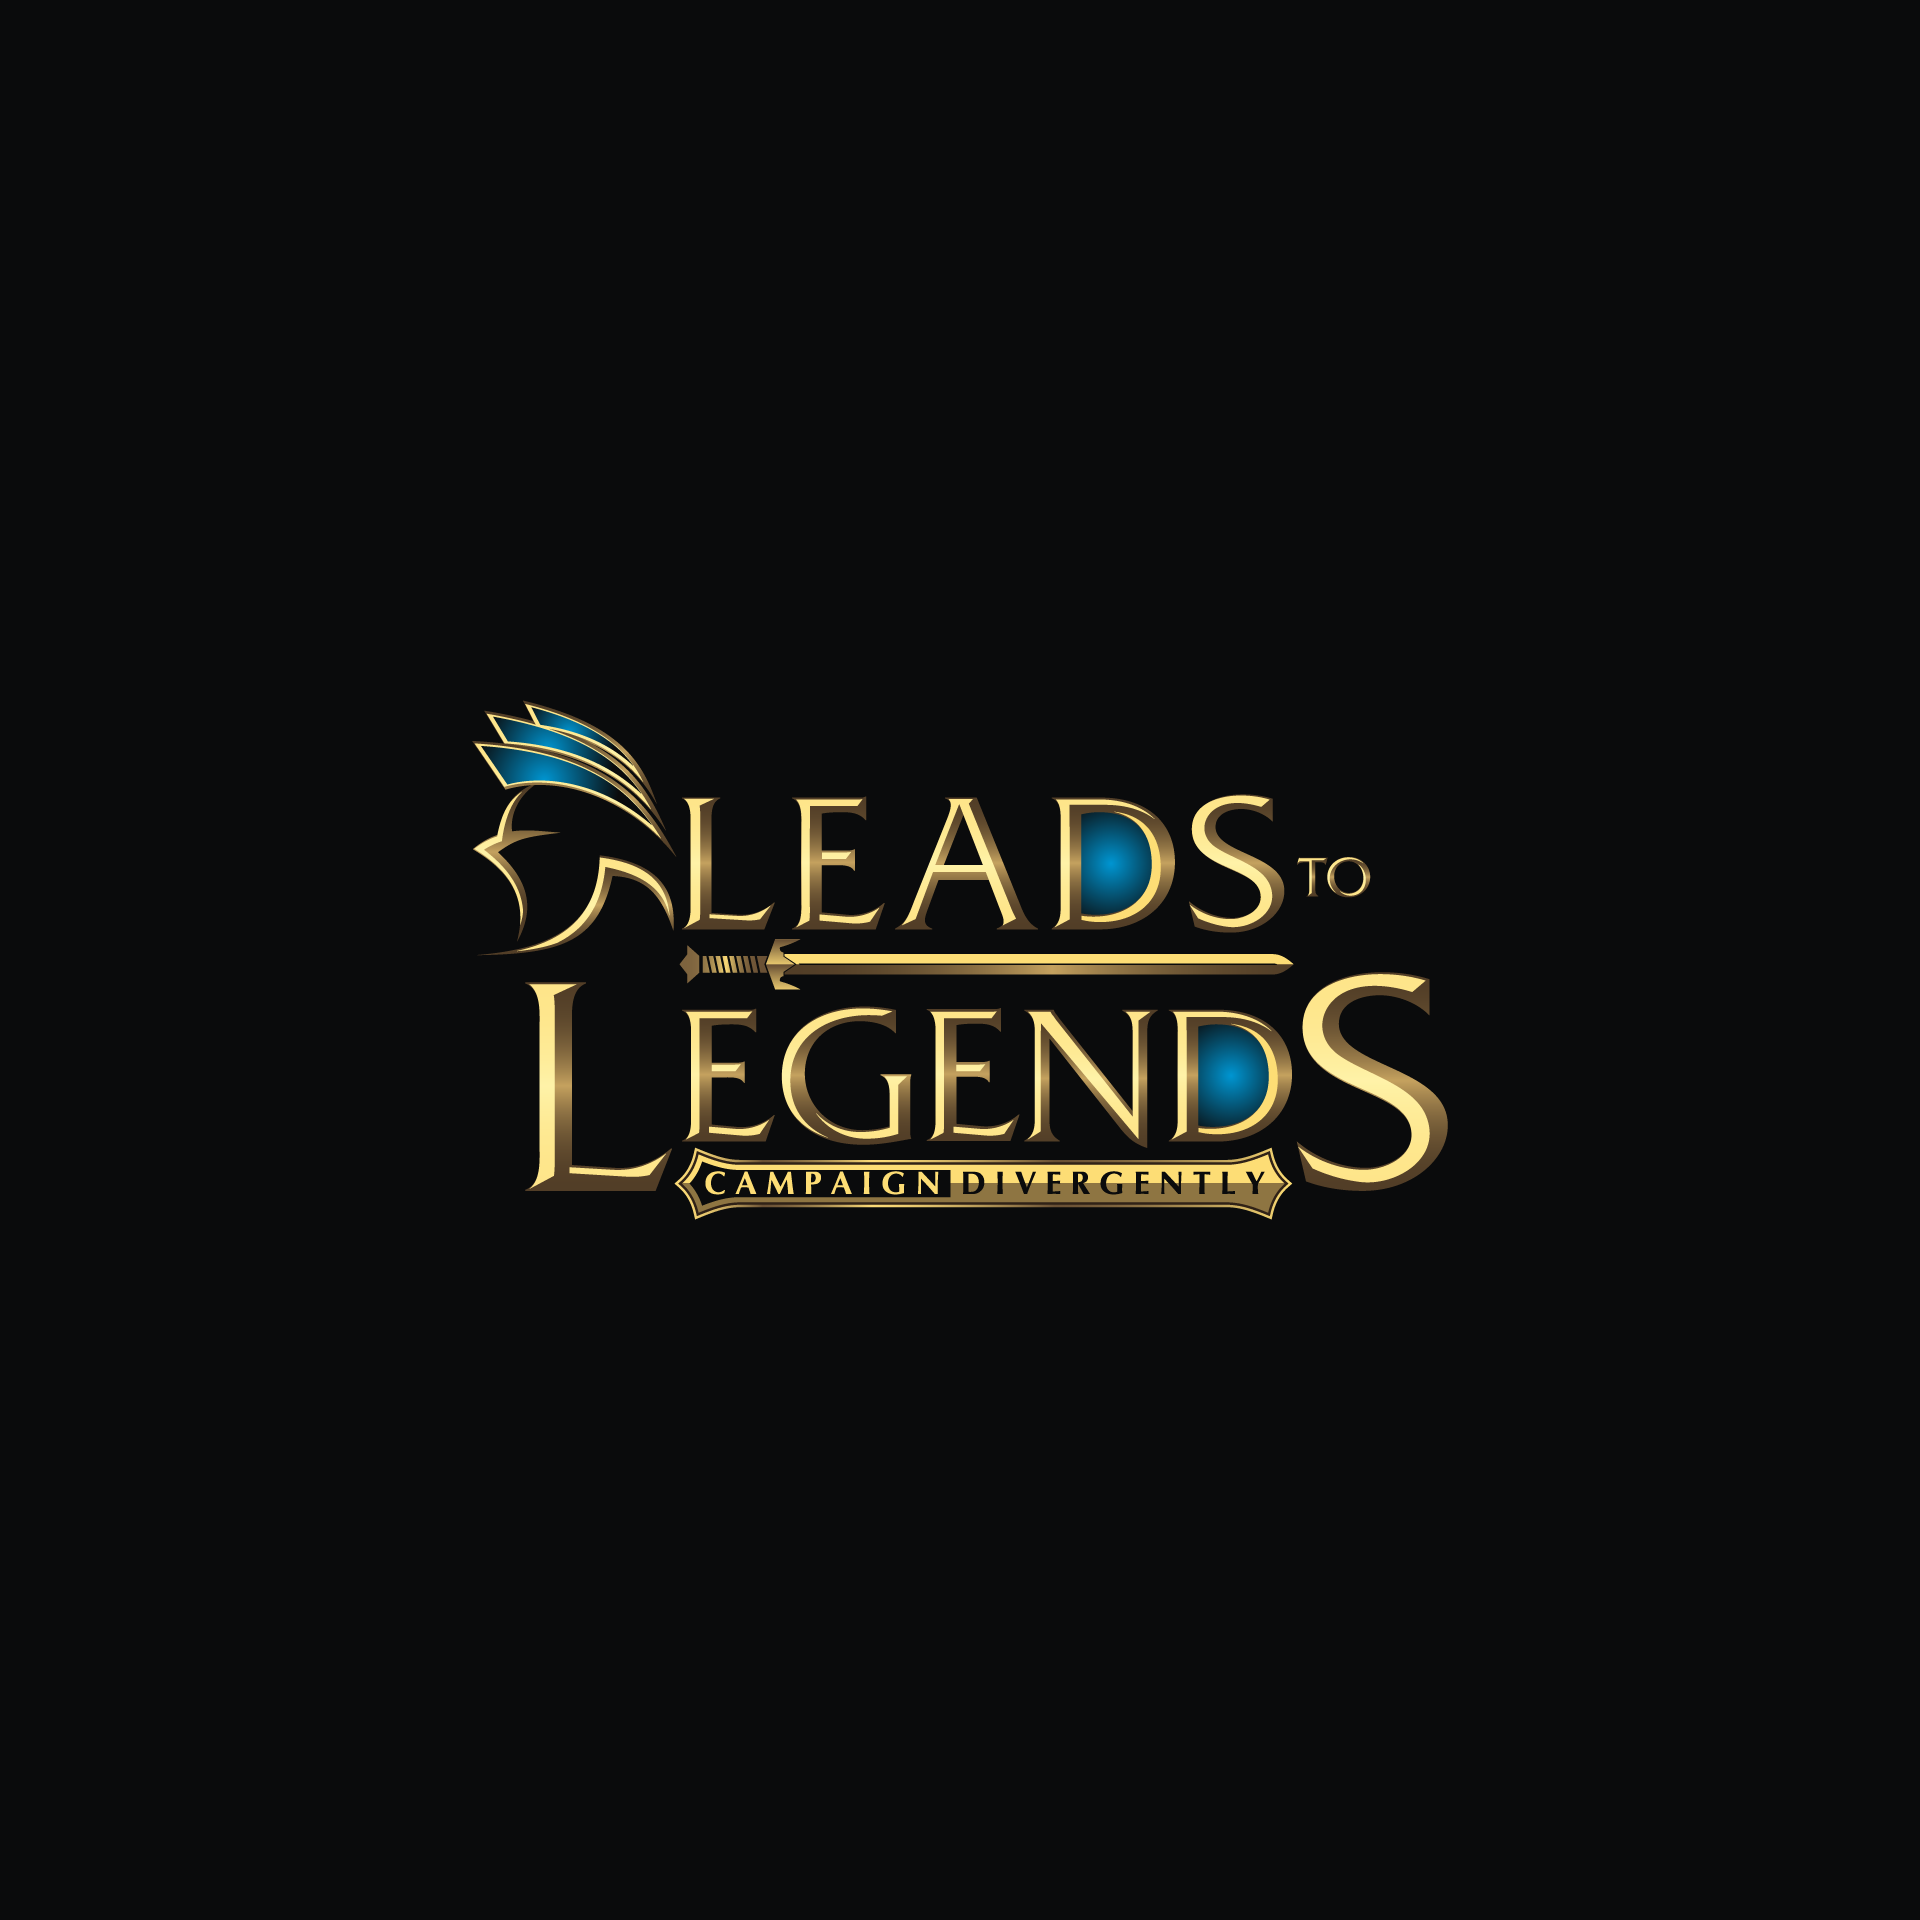 Create a modern, fantasy themed logo for copywriting consultancy Leads to Legends